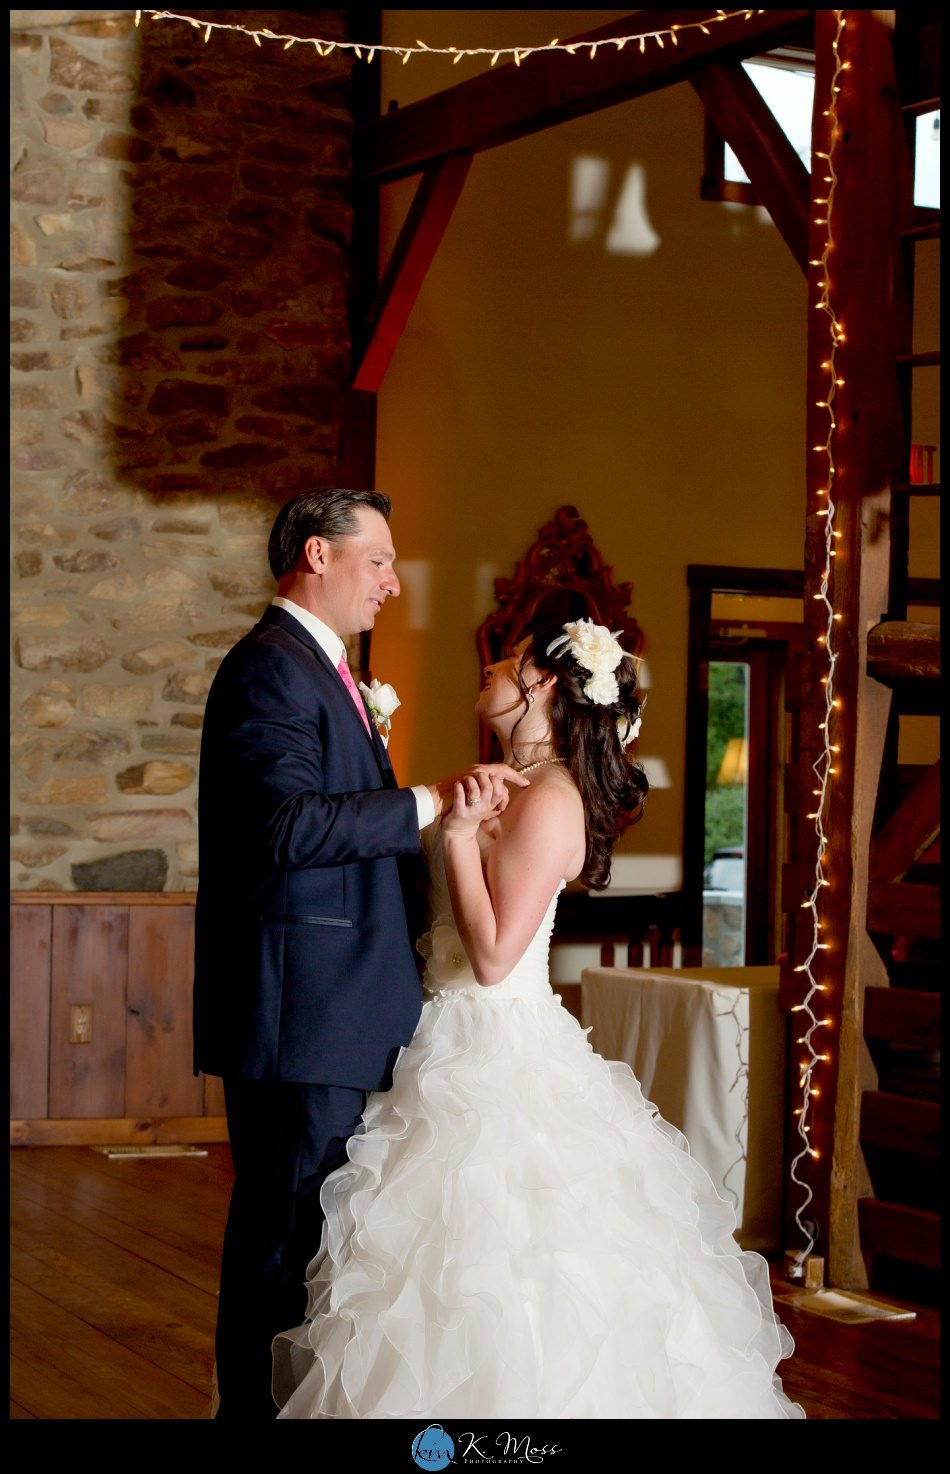 bally spring inn wedding – bride ruffle ball gown - Mori lee wedding gown – Susankolarcouture - Sue annes bridal outlet - wedding bouquet - rose and peony bride bouquet - rose peony flowers – Distinctive Florals by Mary - lehigh valley wedding photographer - rustic wedding - reading pa wedding photographer – dj jimbo